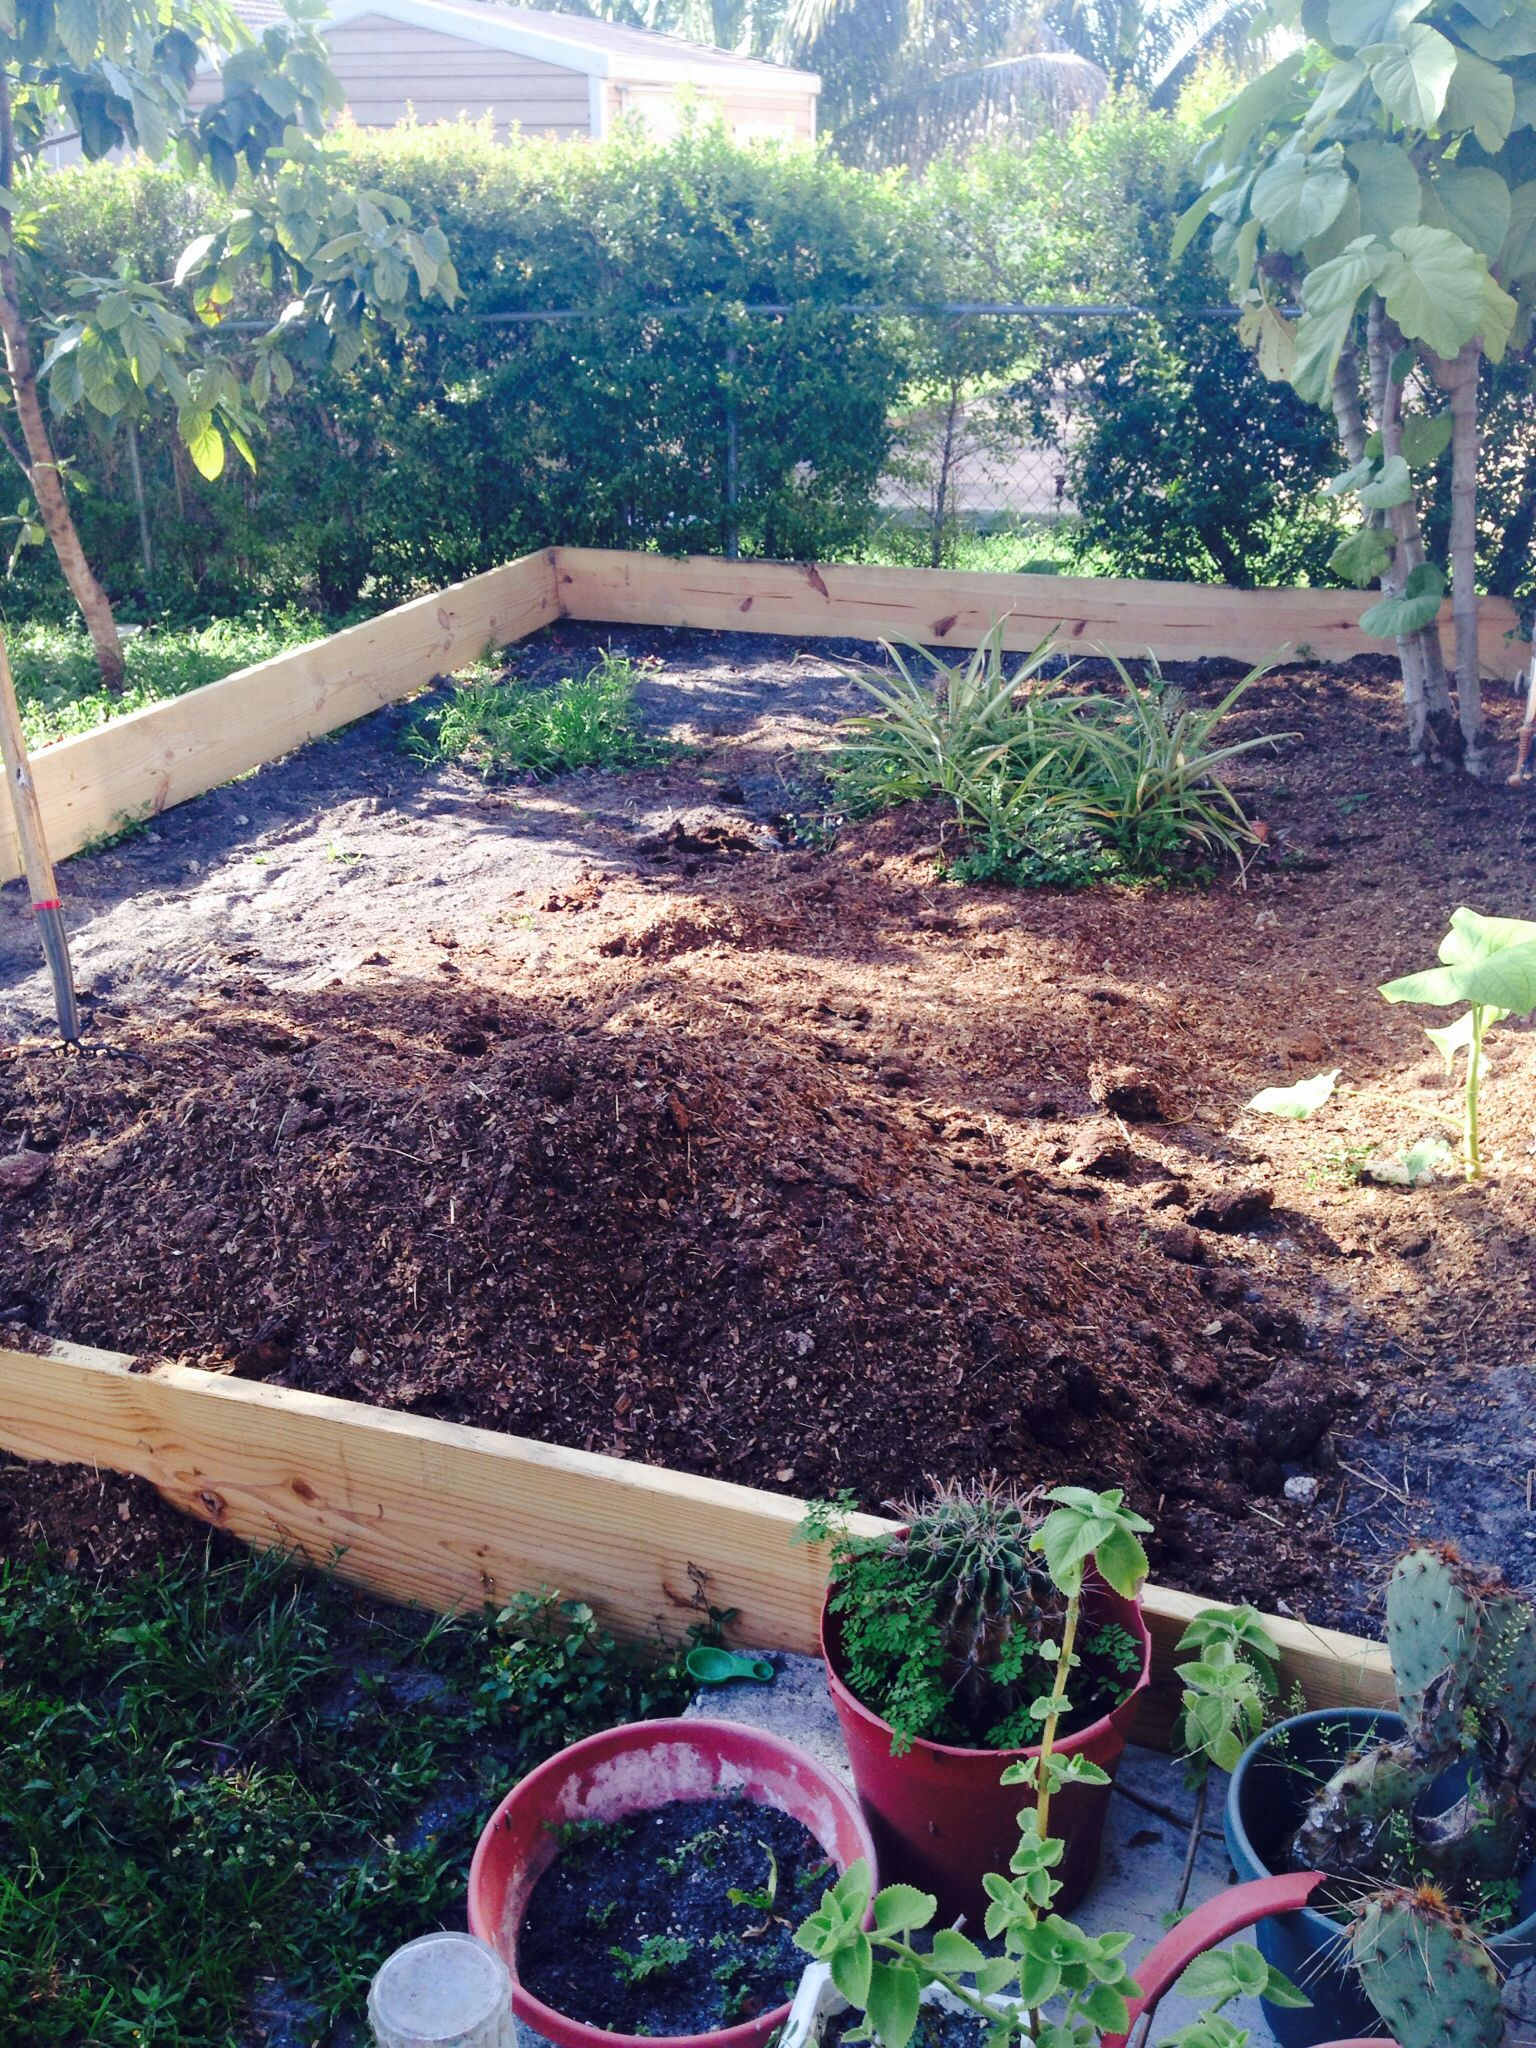 This is a raised bed waiting to lay down my beautiful organic garden